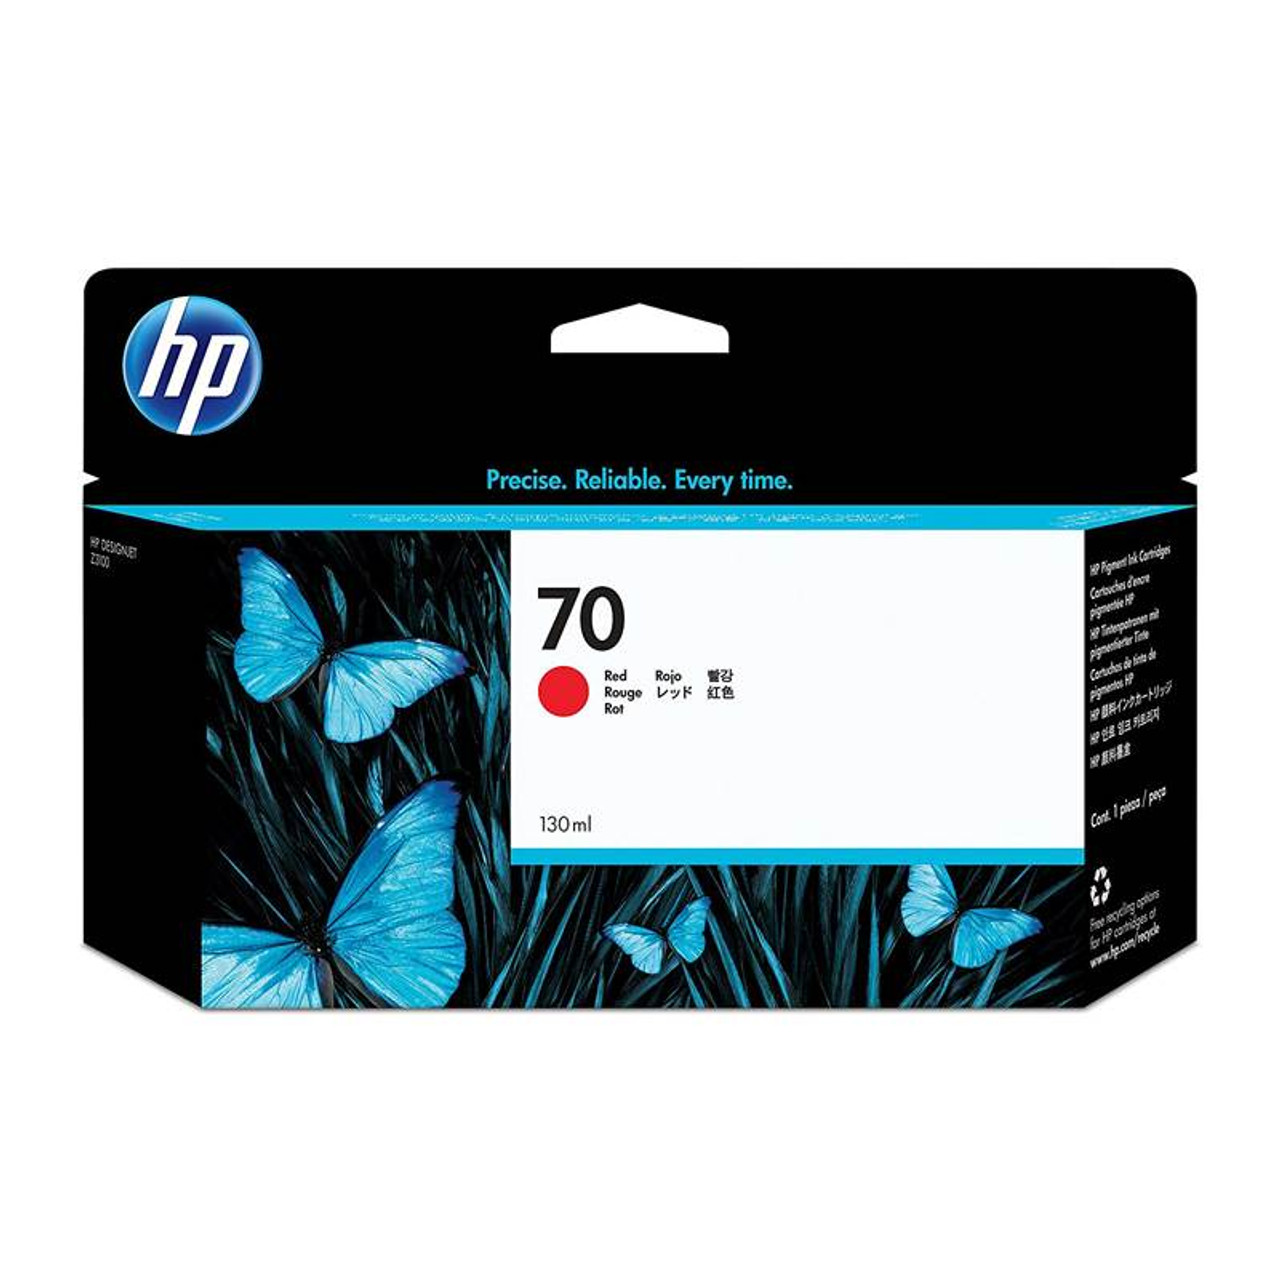 Image for HP 70 Red 130ML Ink Cartridge Z3100 (C9456A) CX Computer Superstore